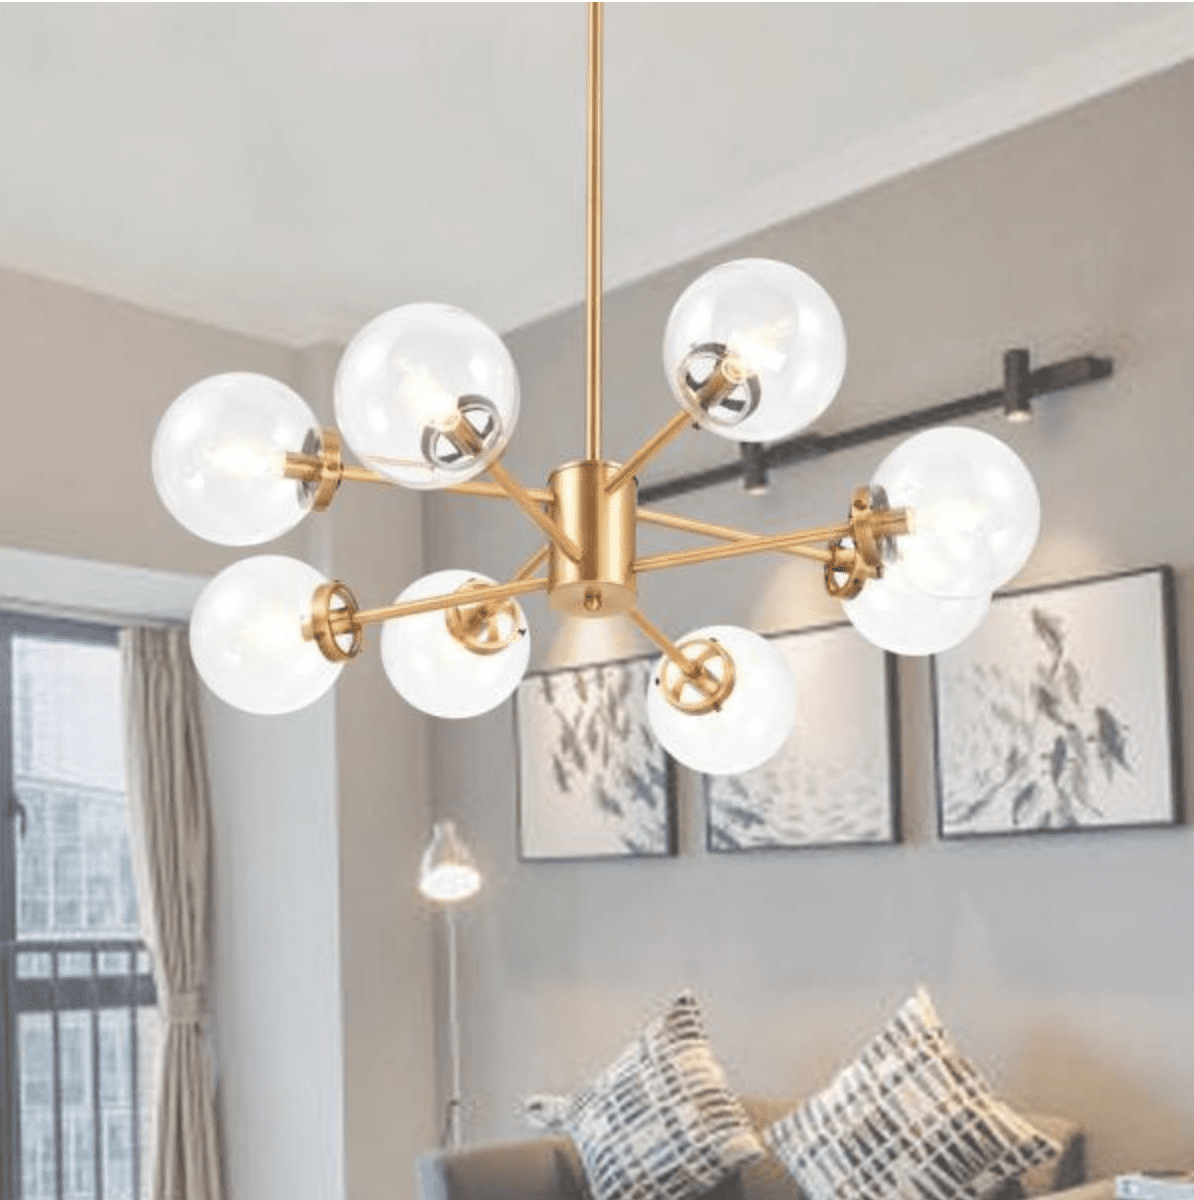 Home Depot: Up to 93% off Lighting and Fan Clearance sale